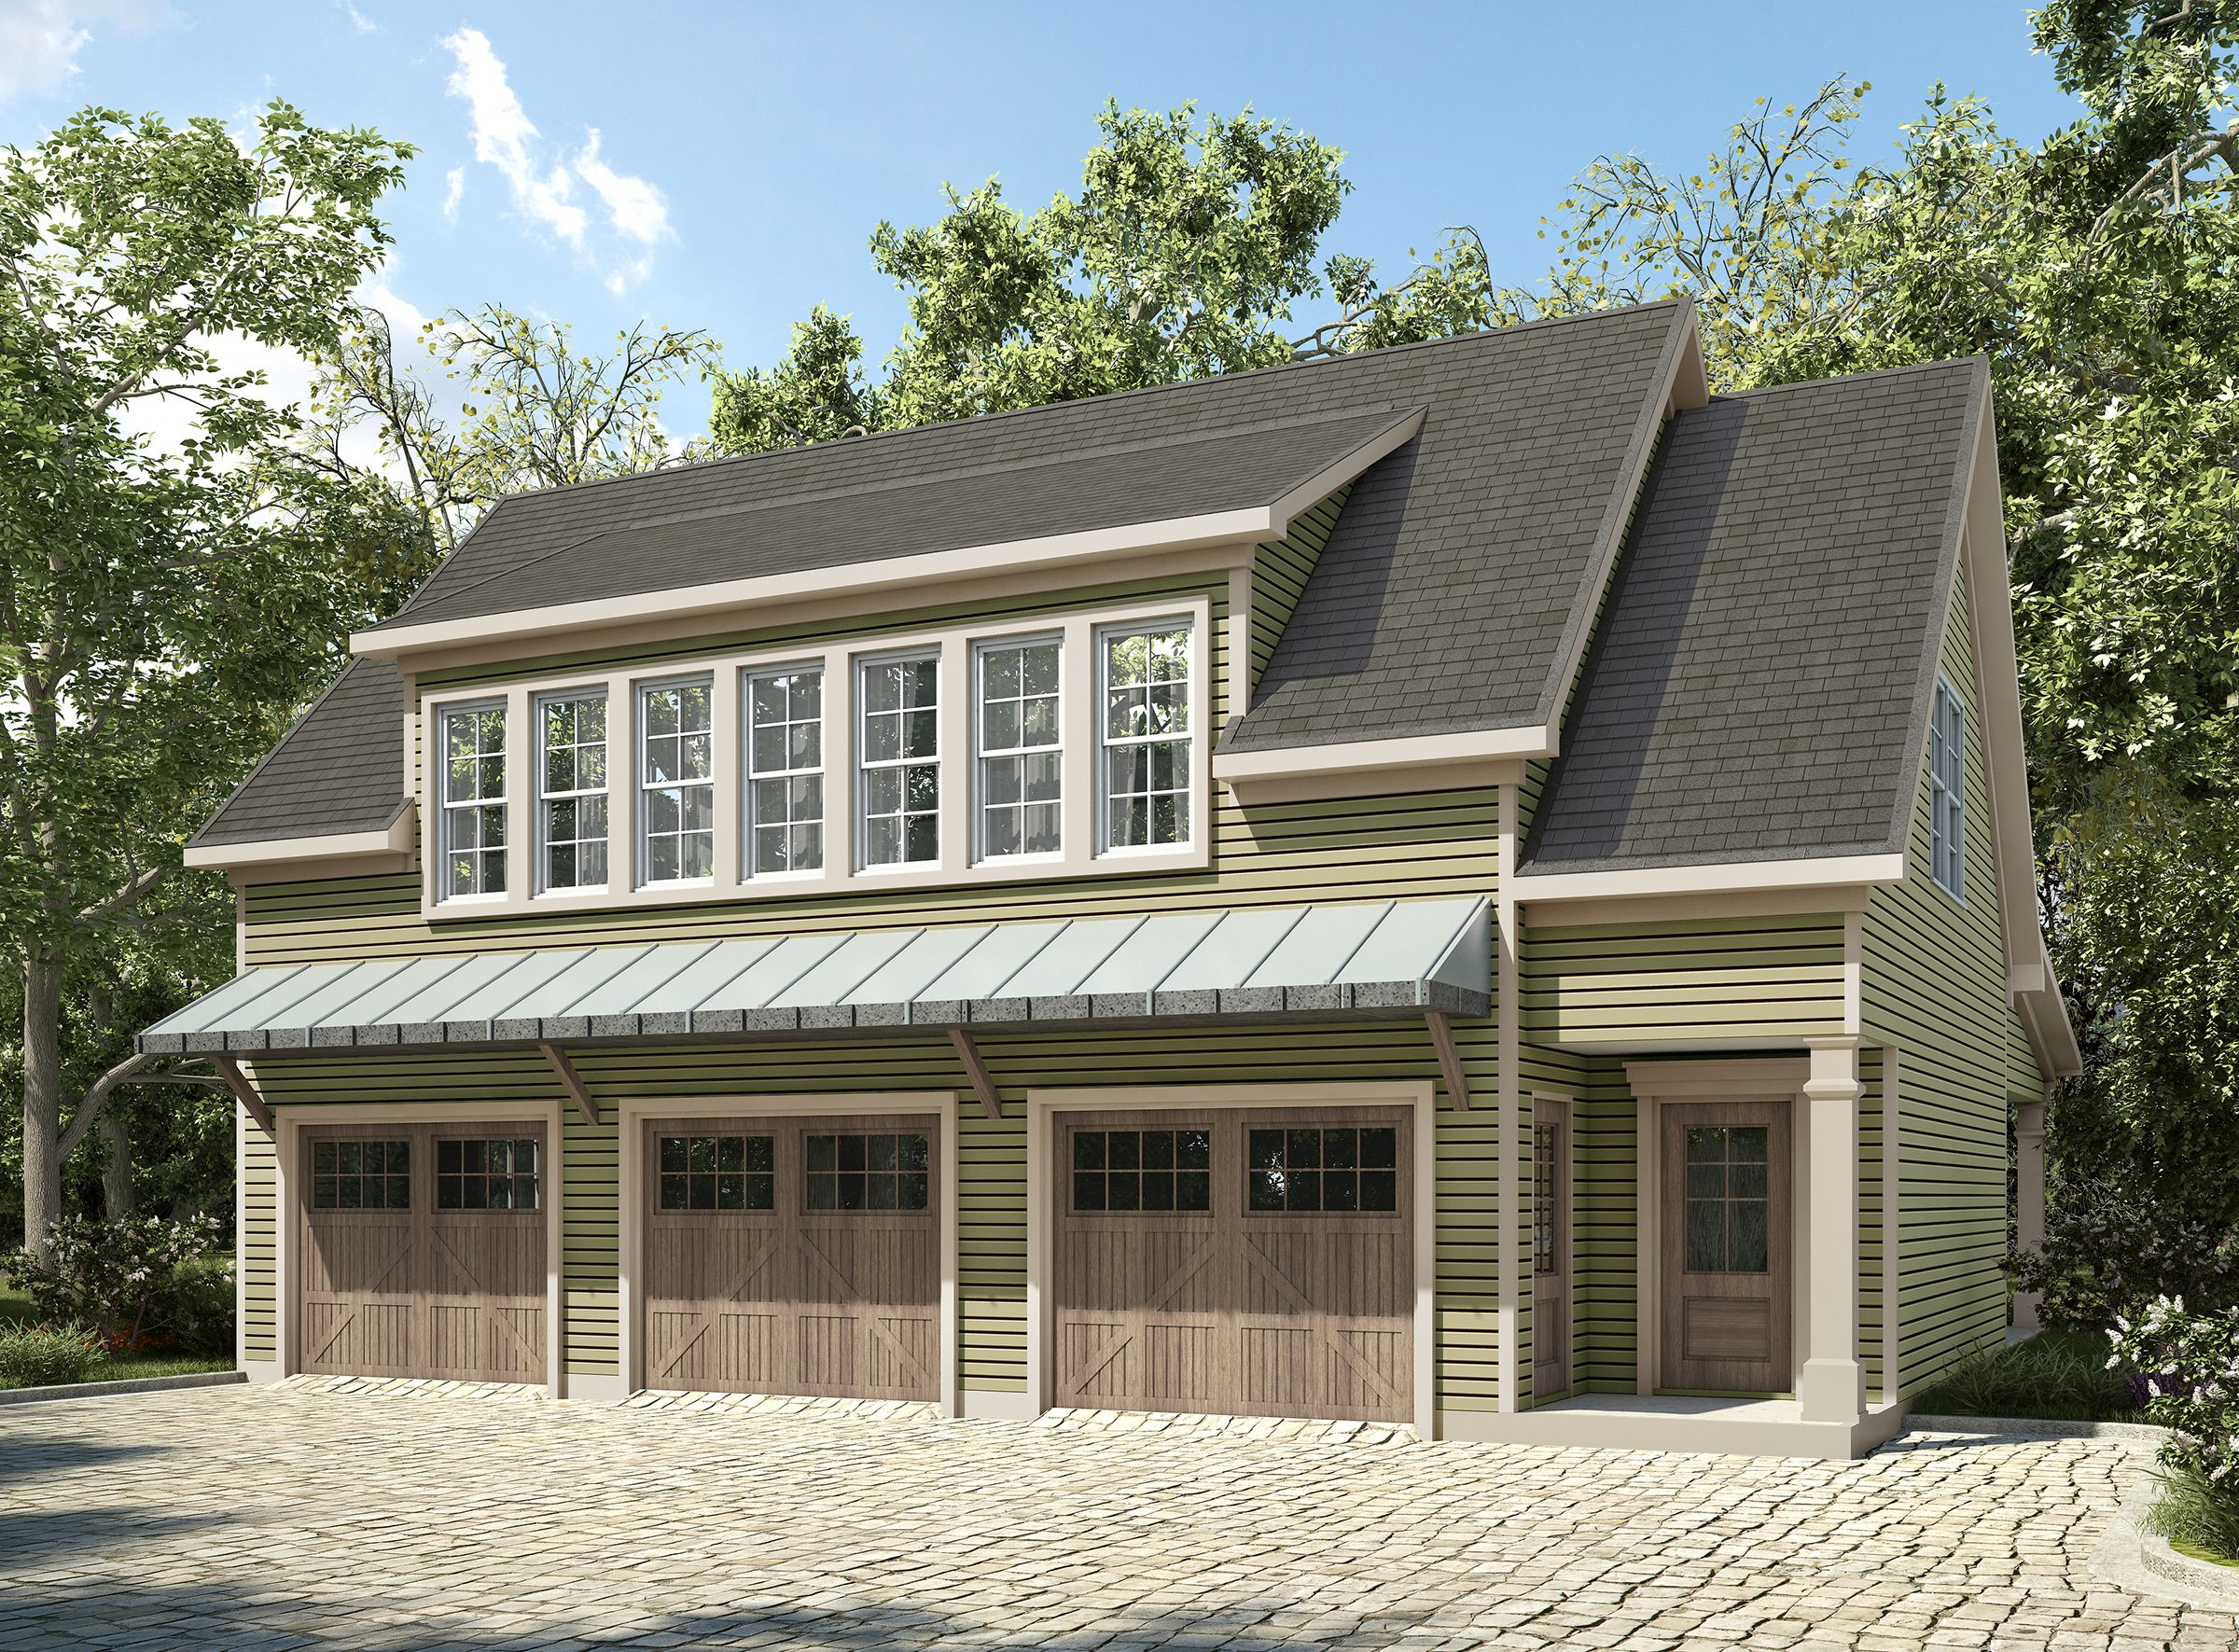 Plan 36057dk 3 bay carriage house plan with shed roof in for Carriage home plans